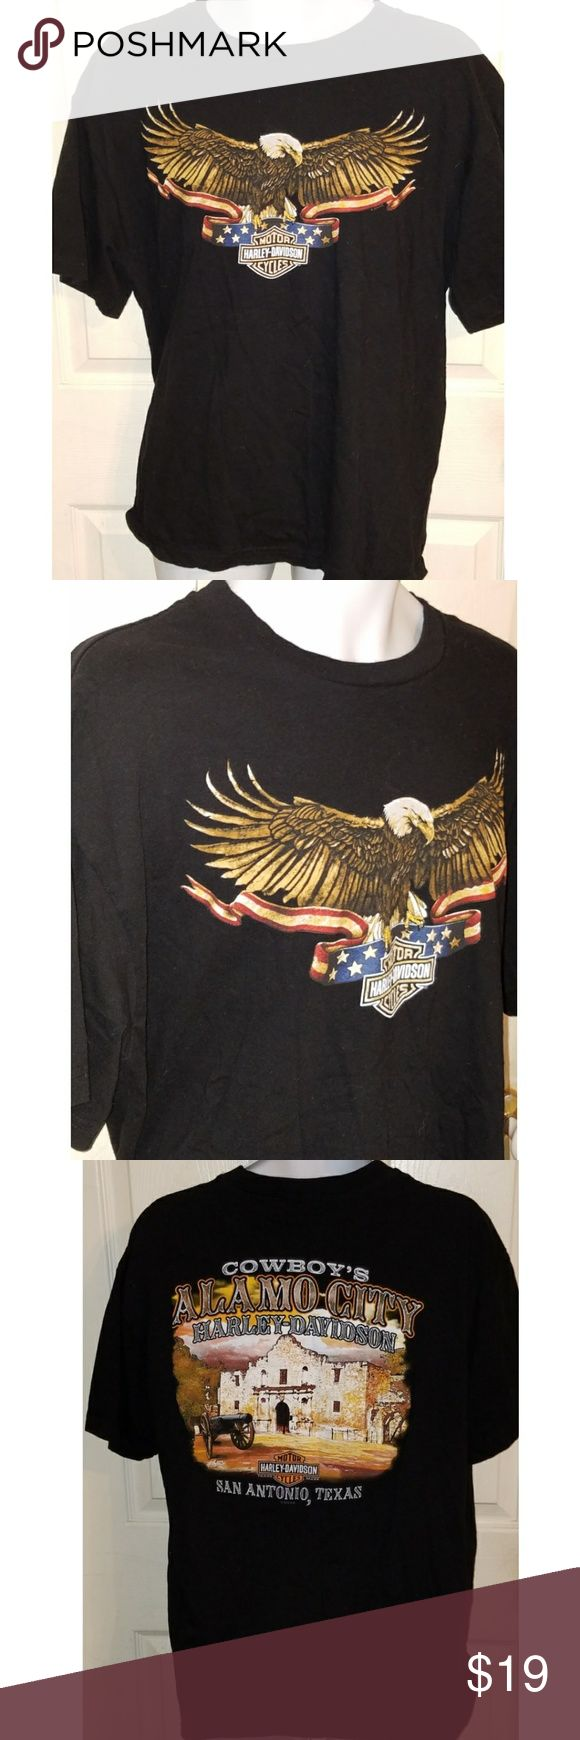 Harley Davidson San Antonio Alamo Mens T-Shirt XL This is a mens XL Harley Davidson t-shirt for San io.The chest measures 23 inches and the length is 29 inches. Harley-Davidson Shirts Tees - Short Sleeve